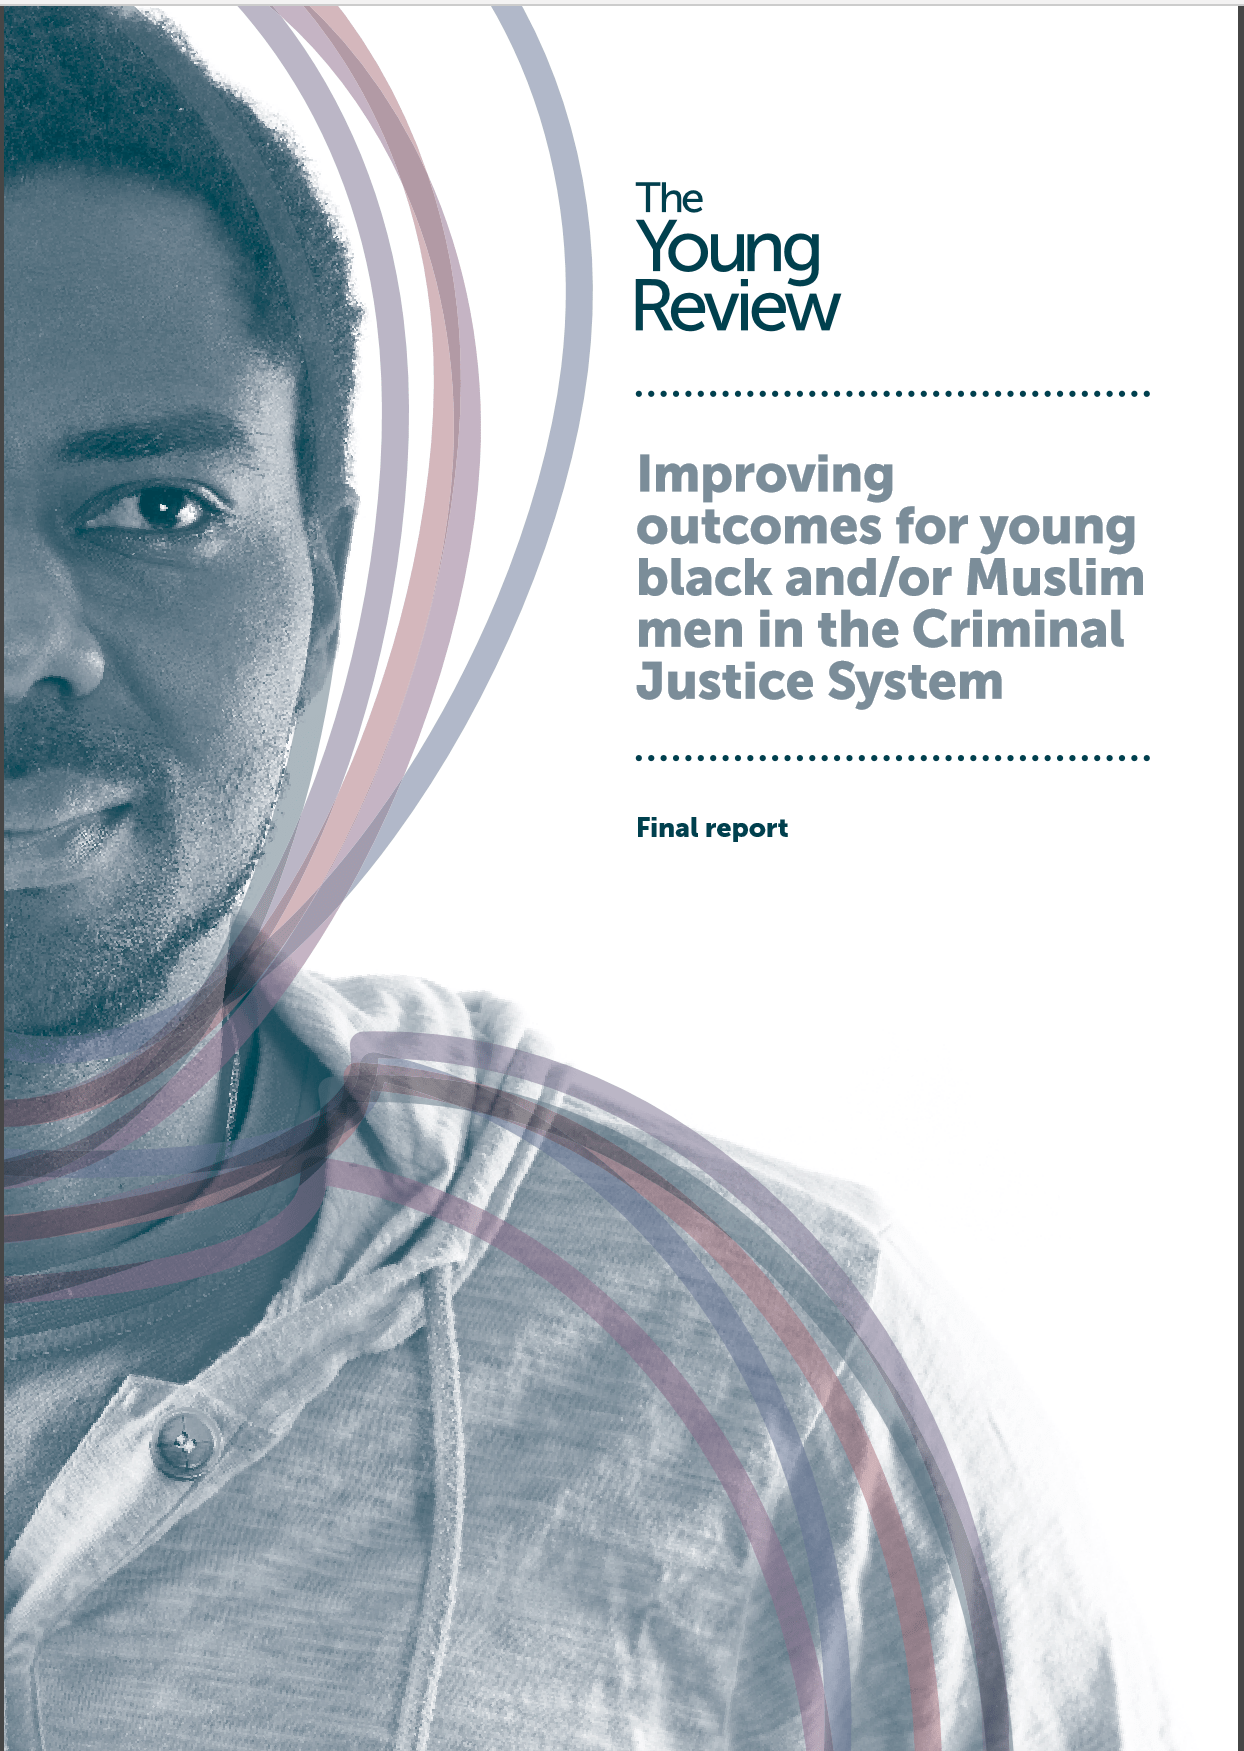 Young Review: Improving outcomes for young black and/or Muslim men in the Criminal Justice System